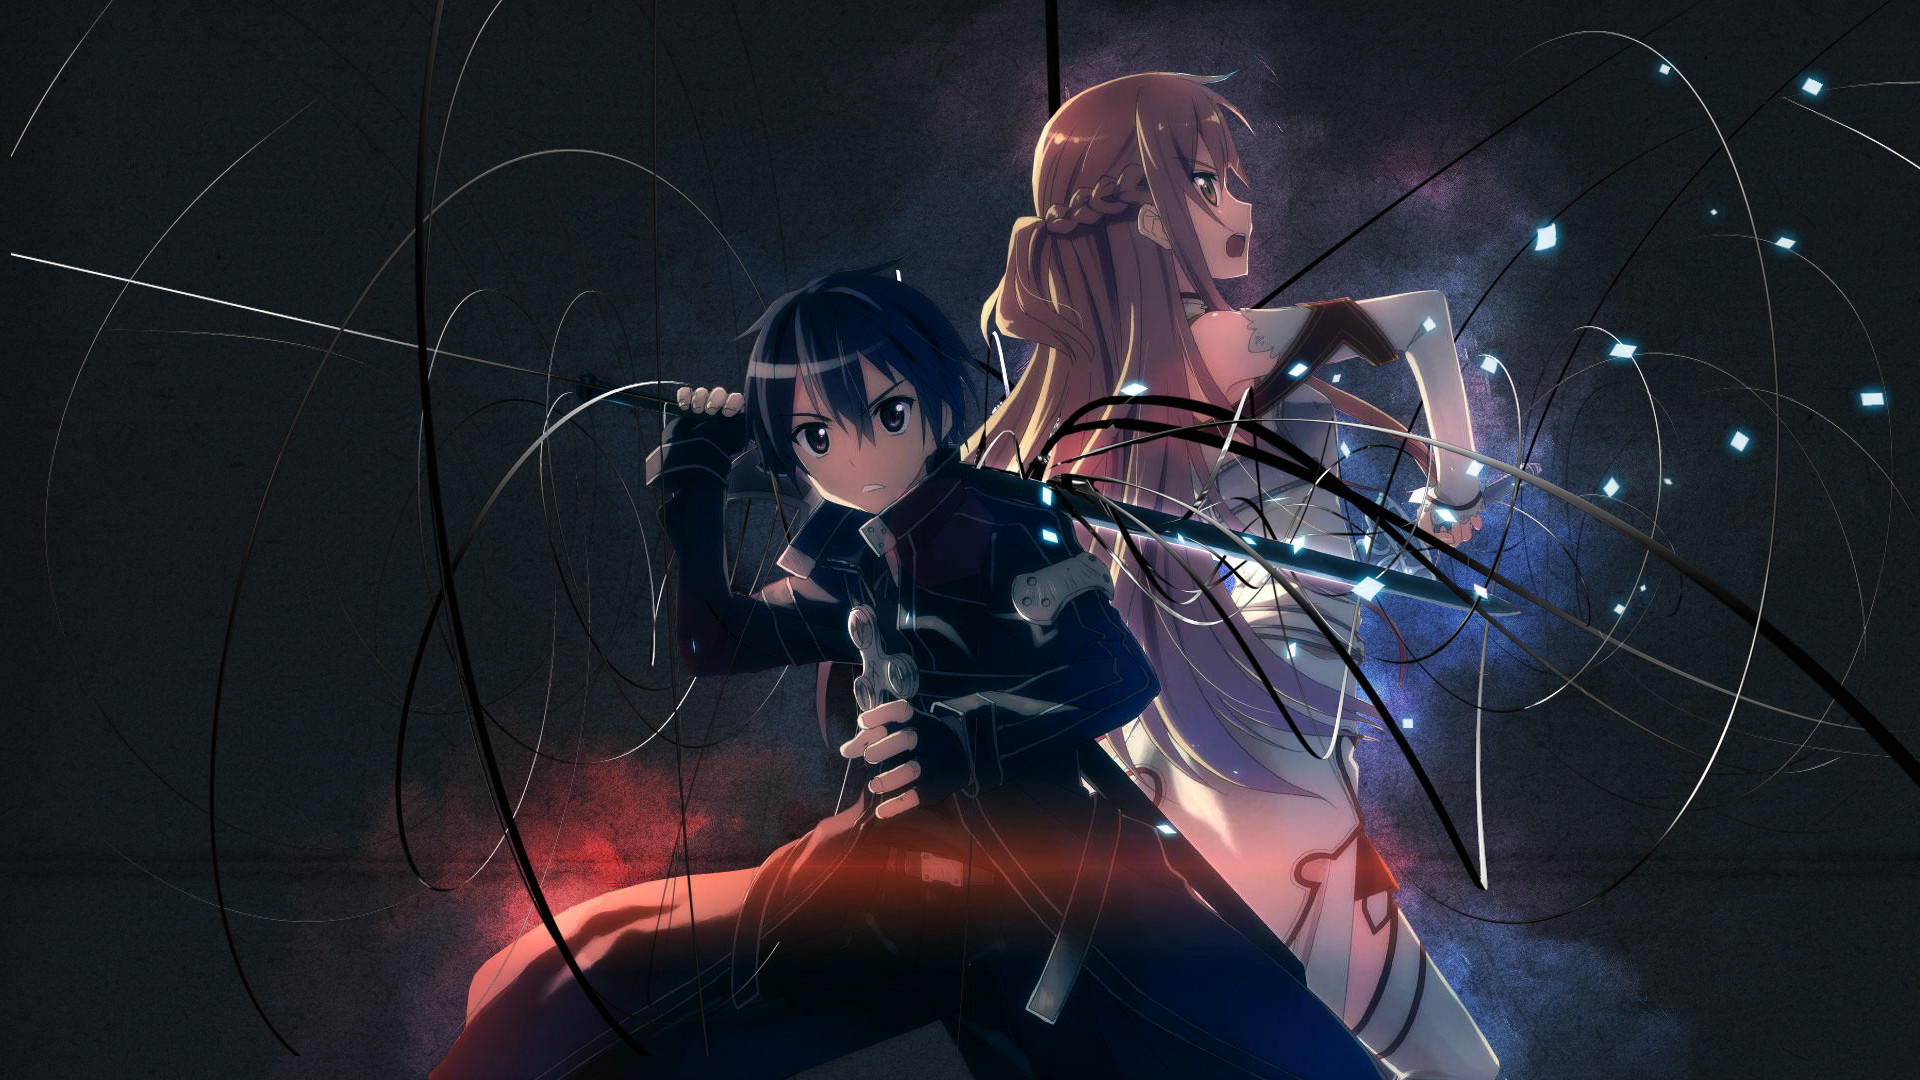 3482 Sword Art Online HD Wallpapers | Backgrounds – Wallpaper Abyss – Page 4